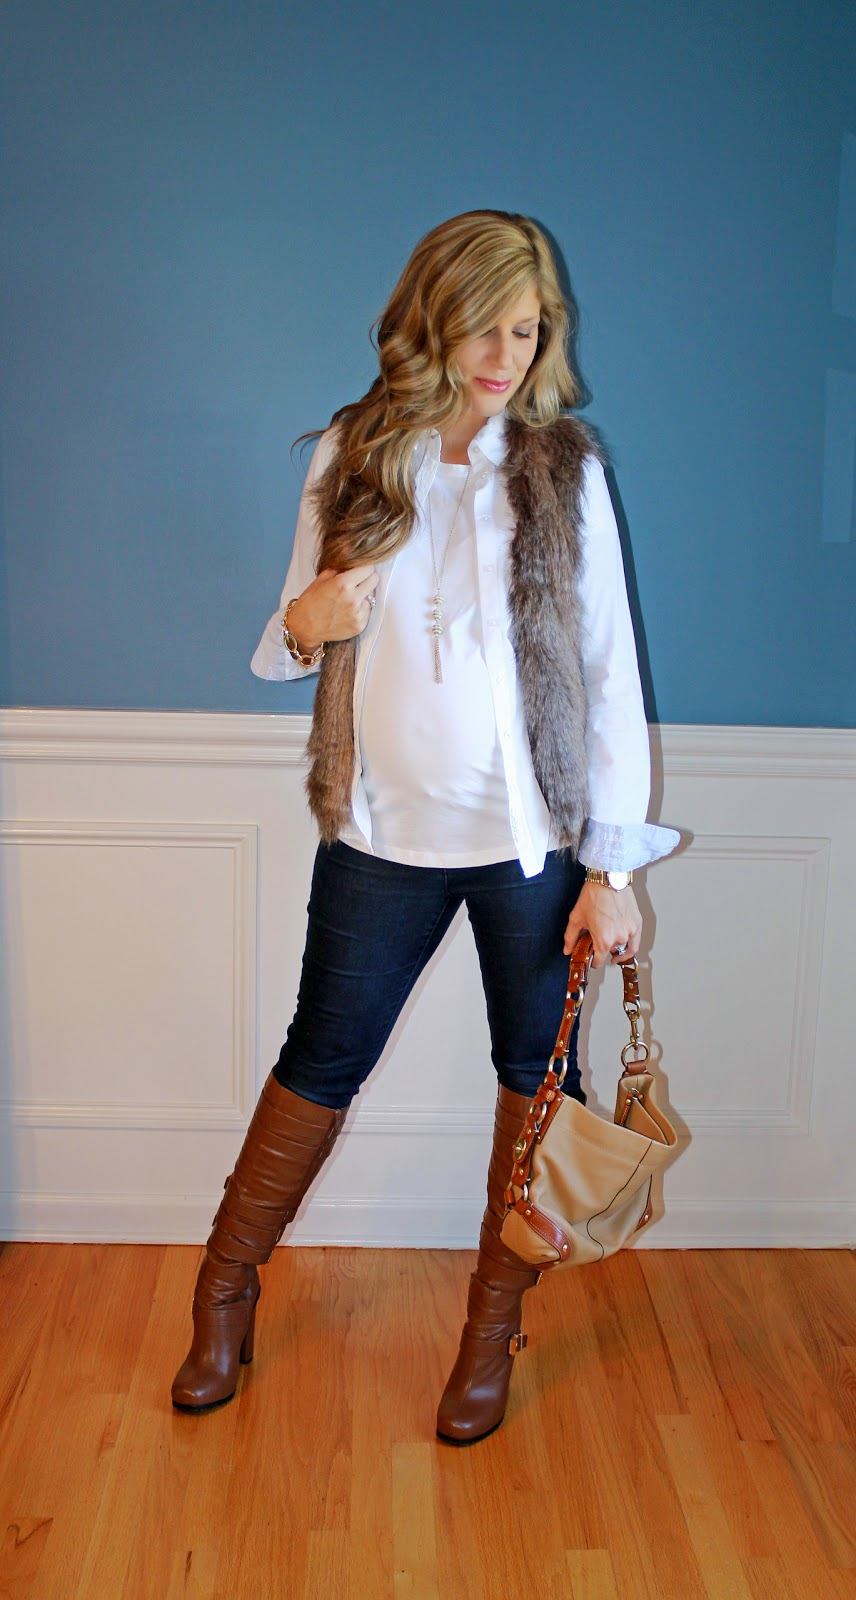 b82db8ca94134 Outfitted411: Faux Fur for Fall...